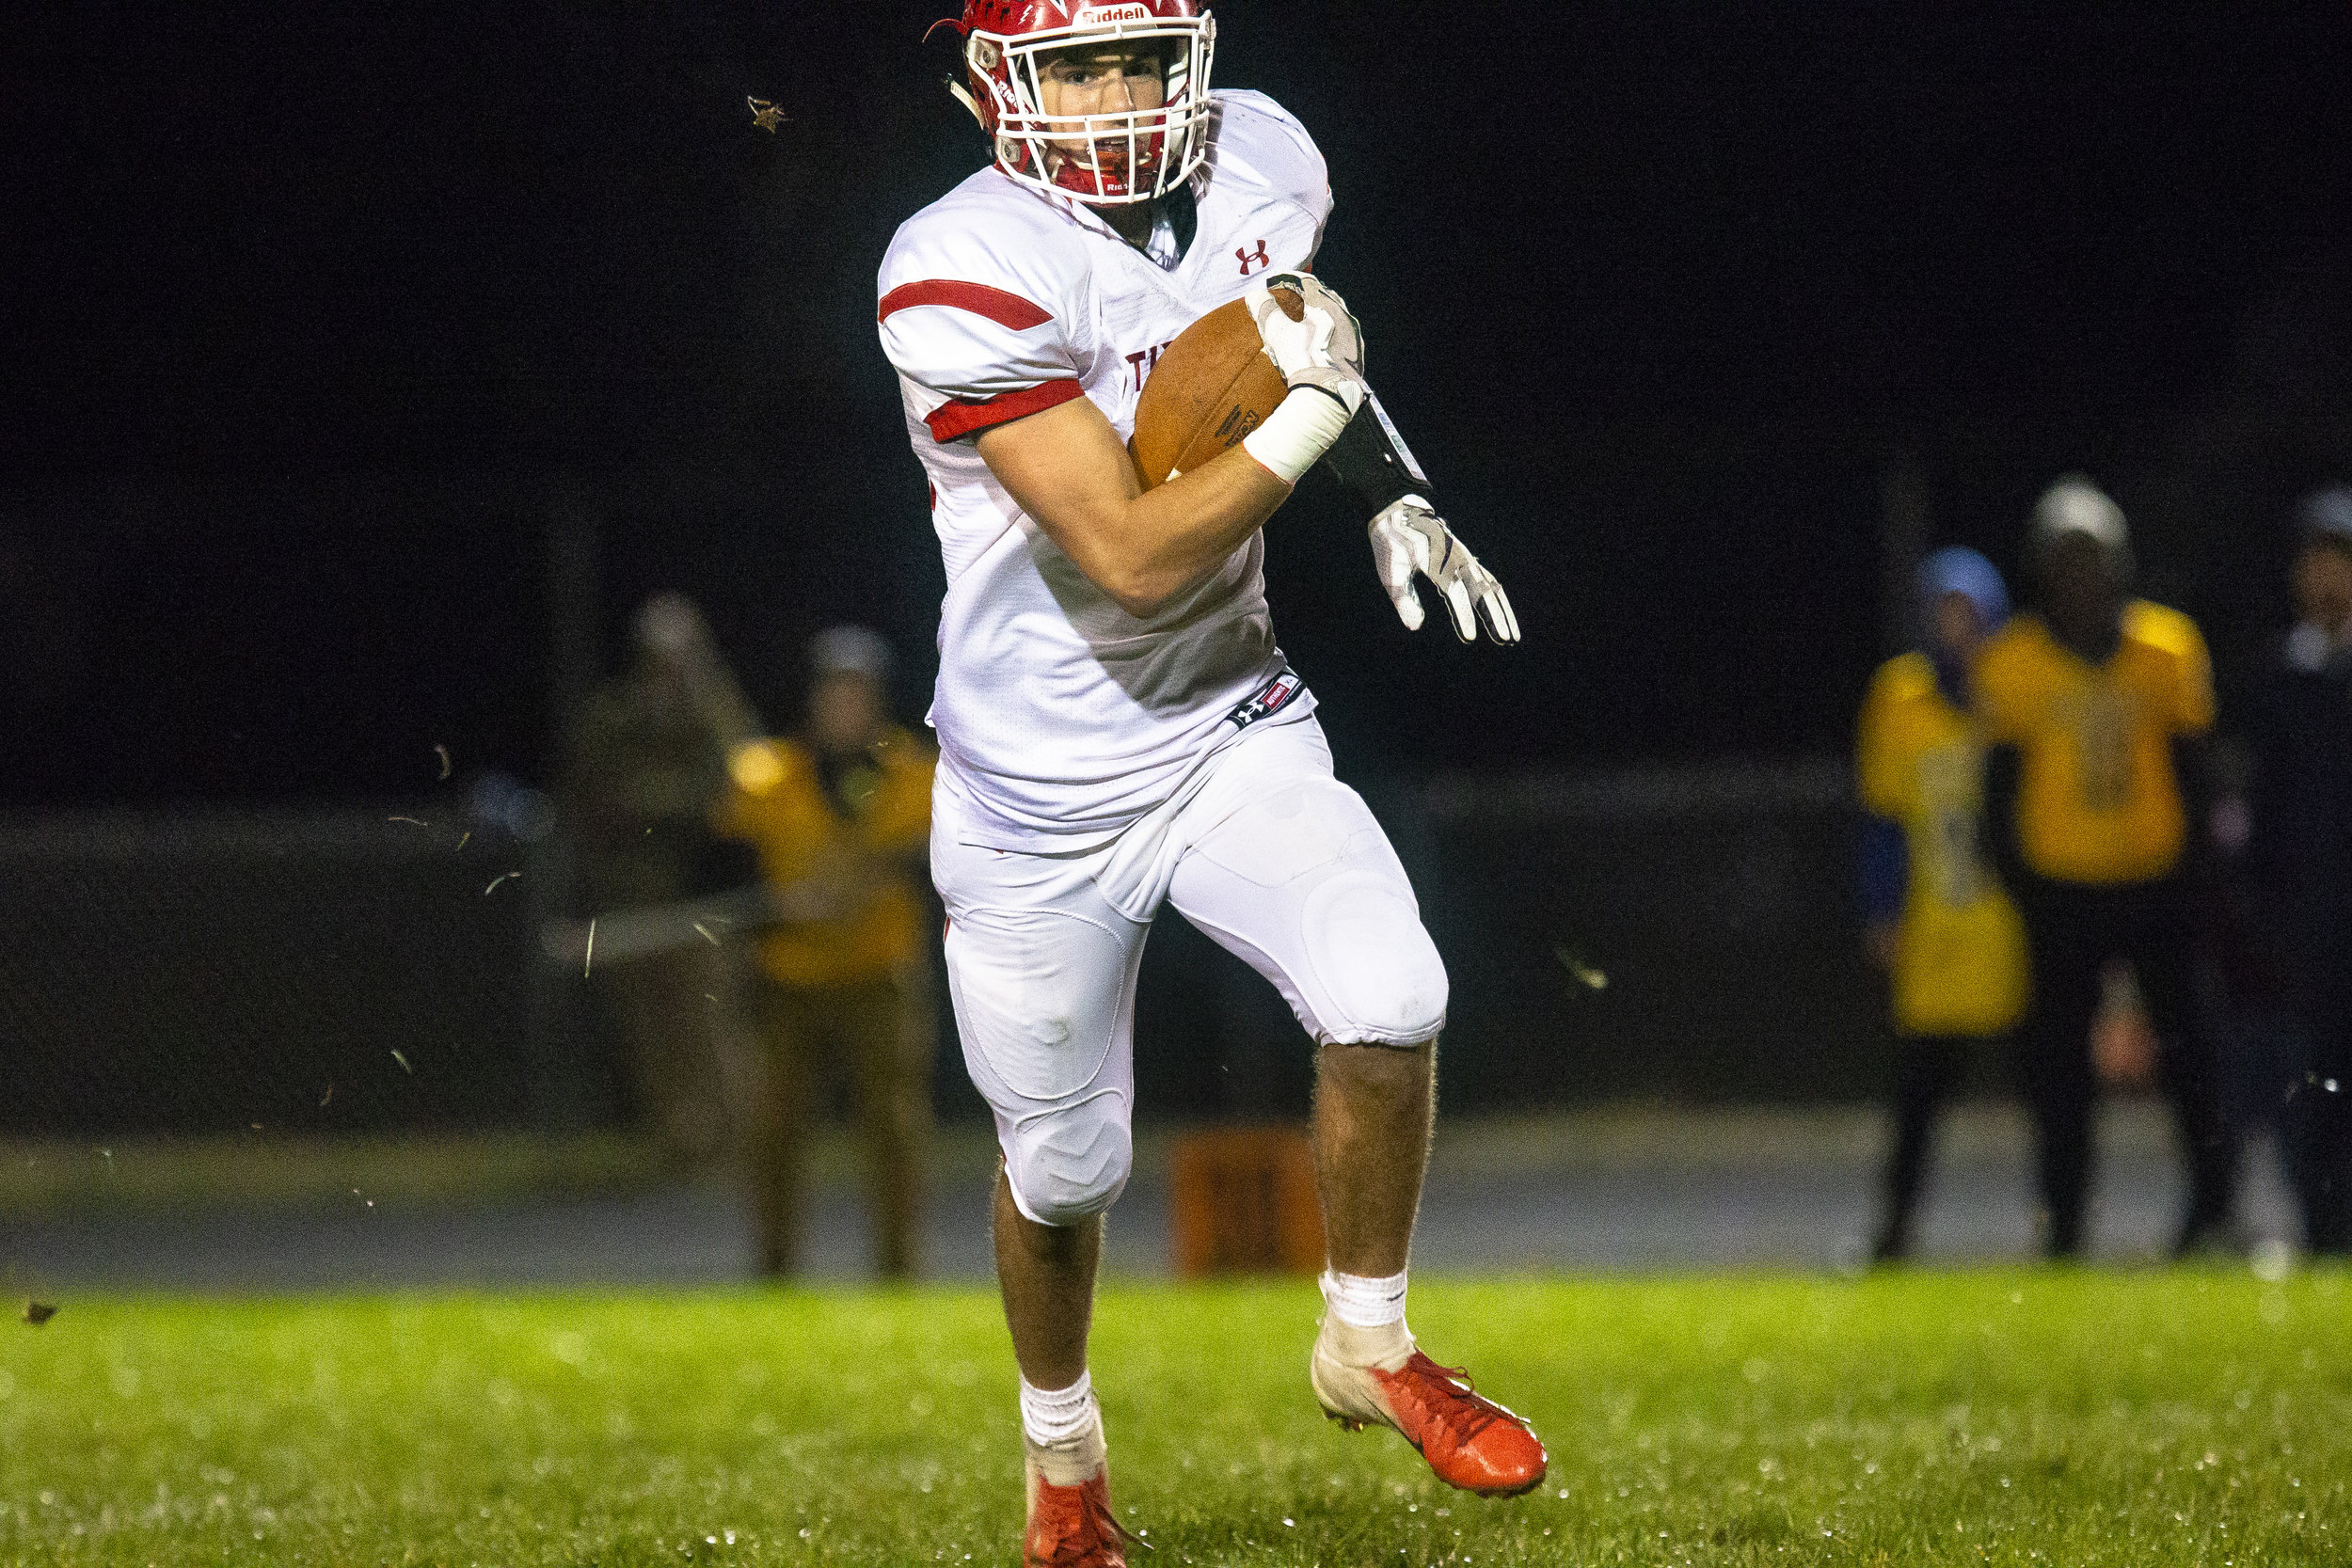 Glenwood's Tyler Burris finds an open field on the way to a touchdown Friday, Oct. 12, 2018 at Southeast High School's Spartan Field in Springfield, Ill. [Rich Saal/The State Journal-Register]